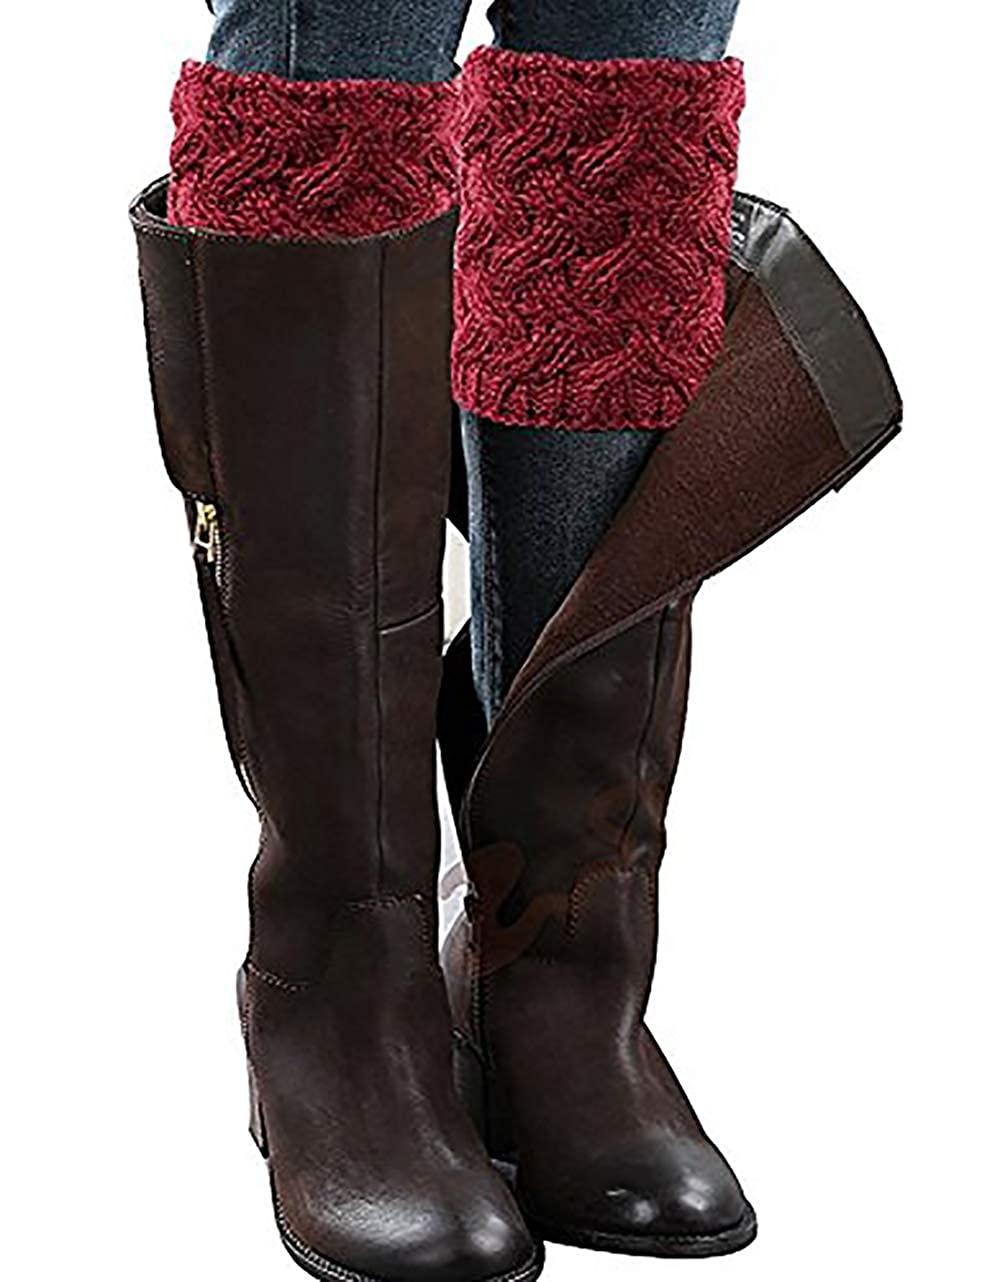 Leg Warmers Socks, NXET Women's Short Leg Warmers Crochet Boot Knit Cover